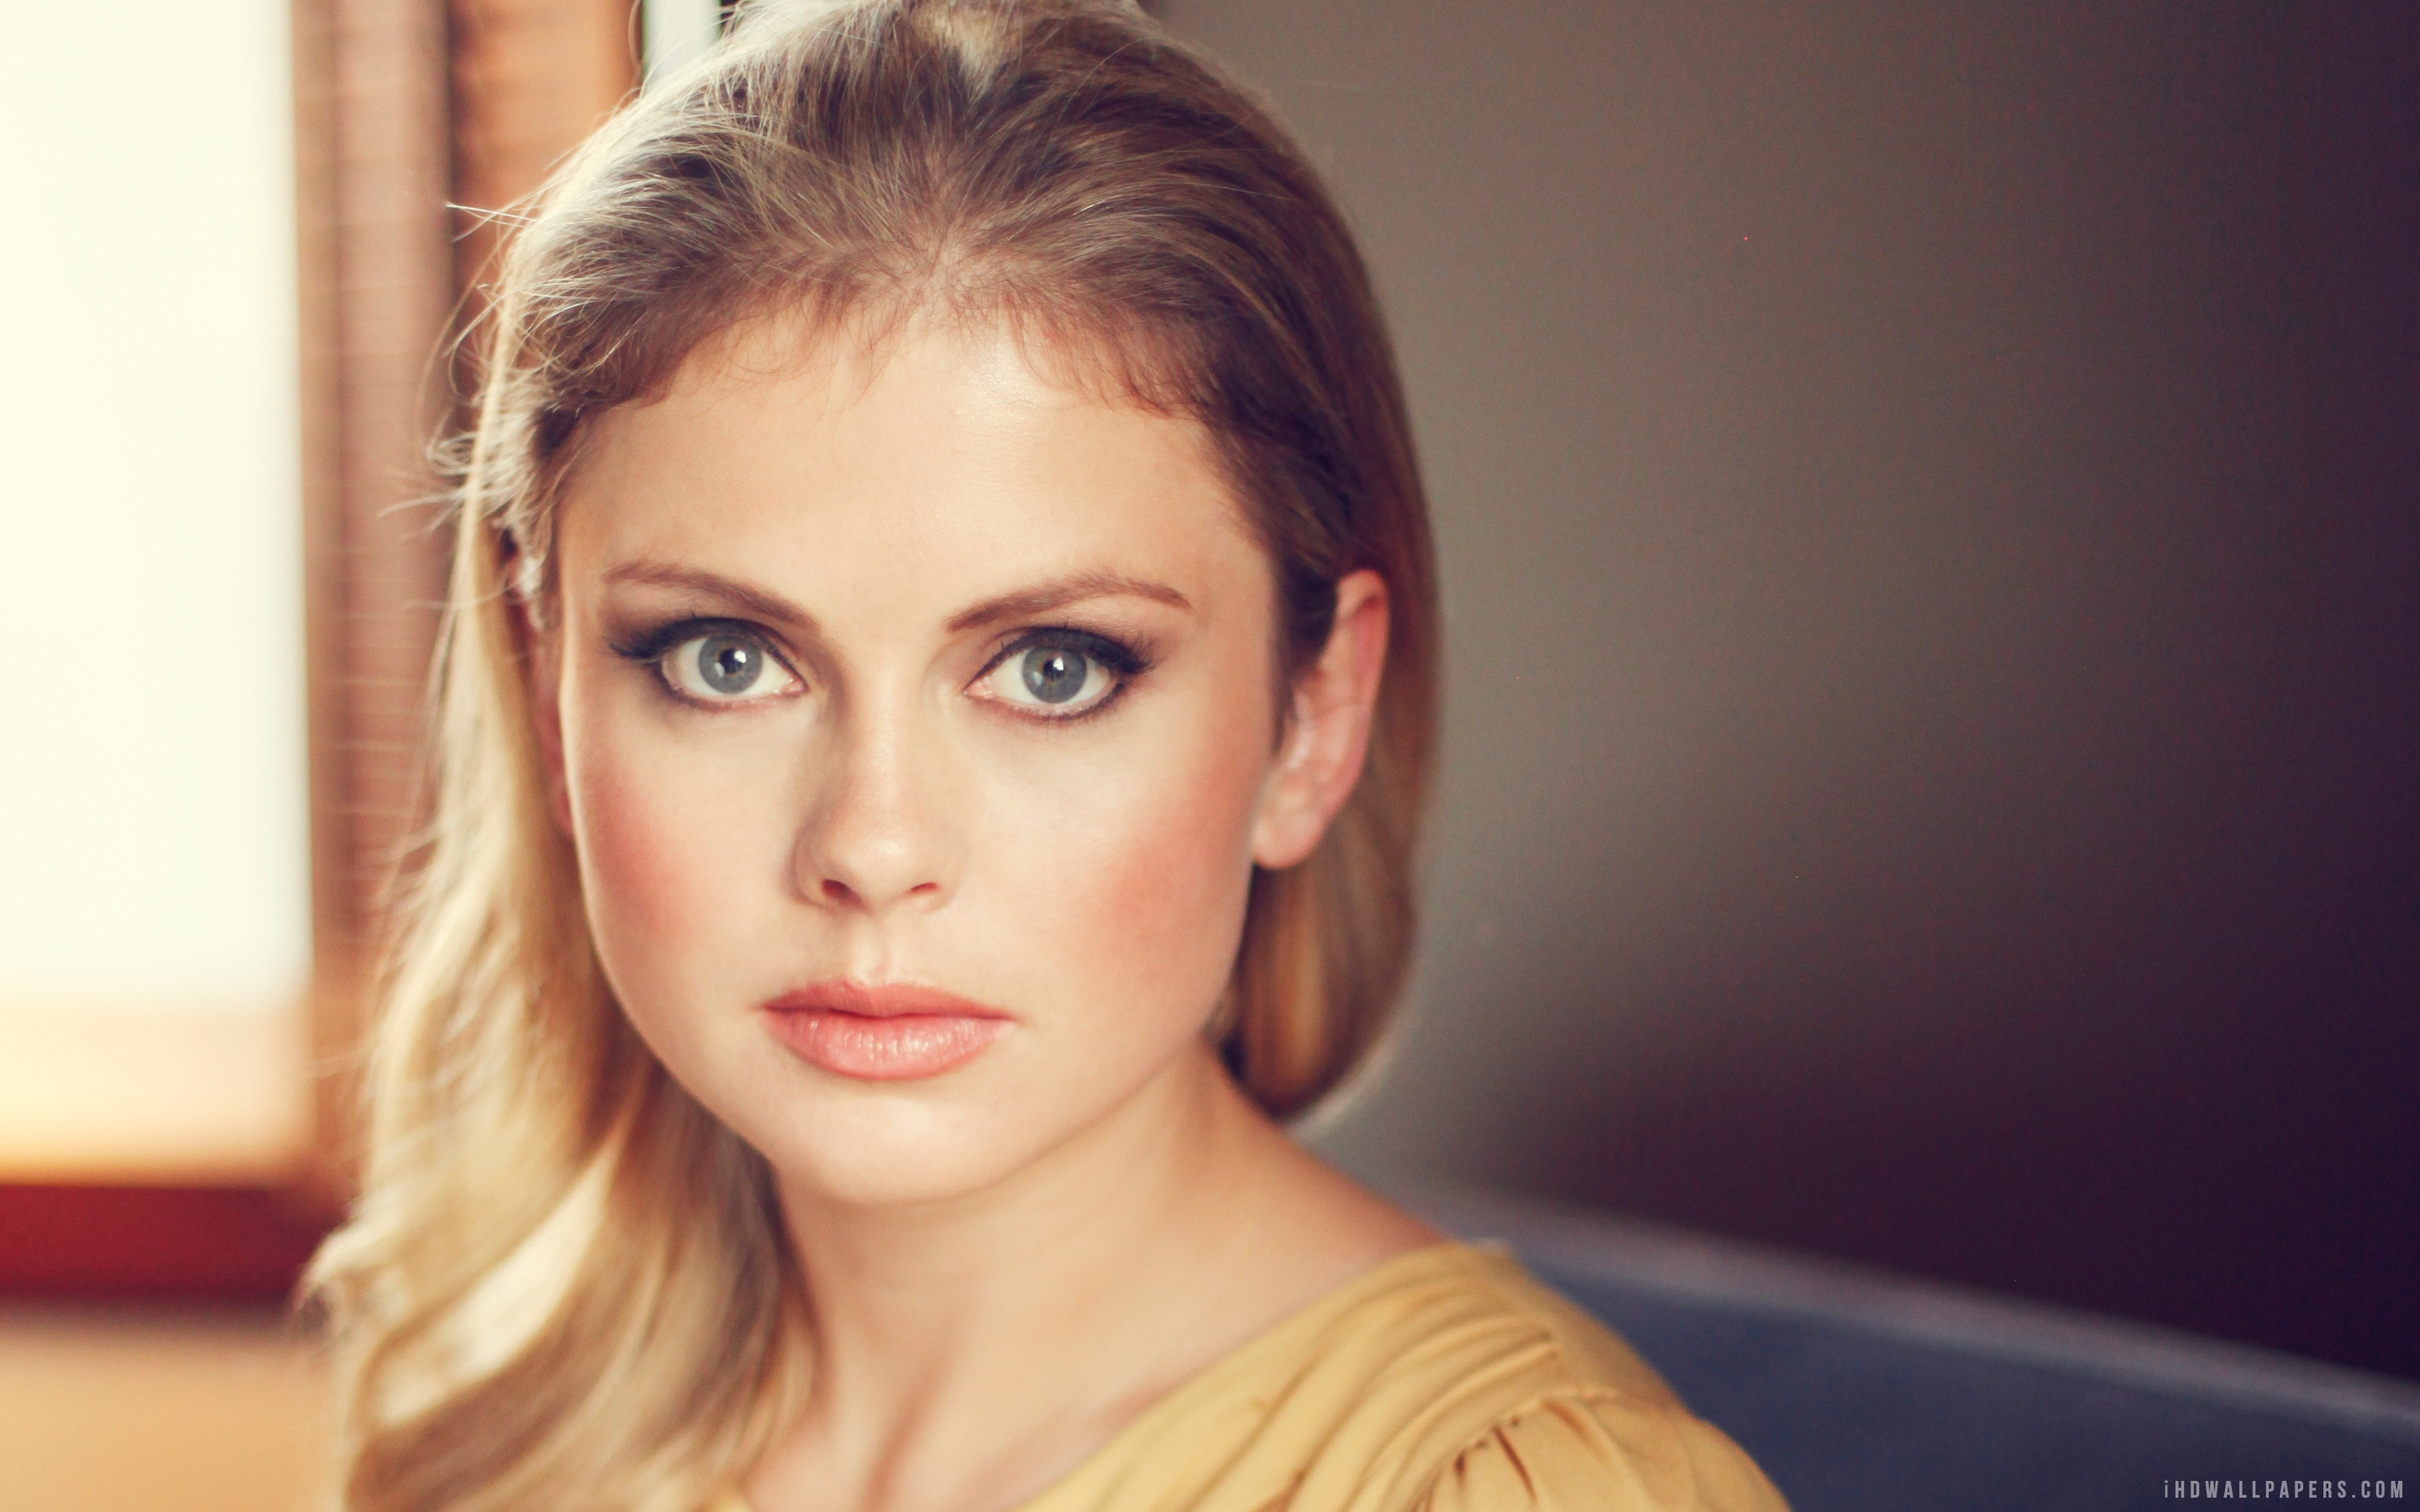 2880x1800 - Rose McIver Wallpapers 26